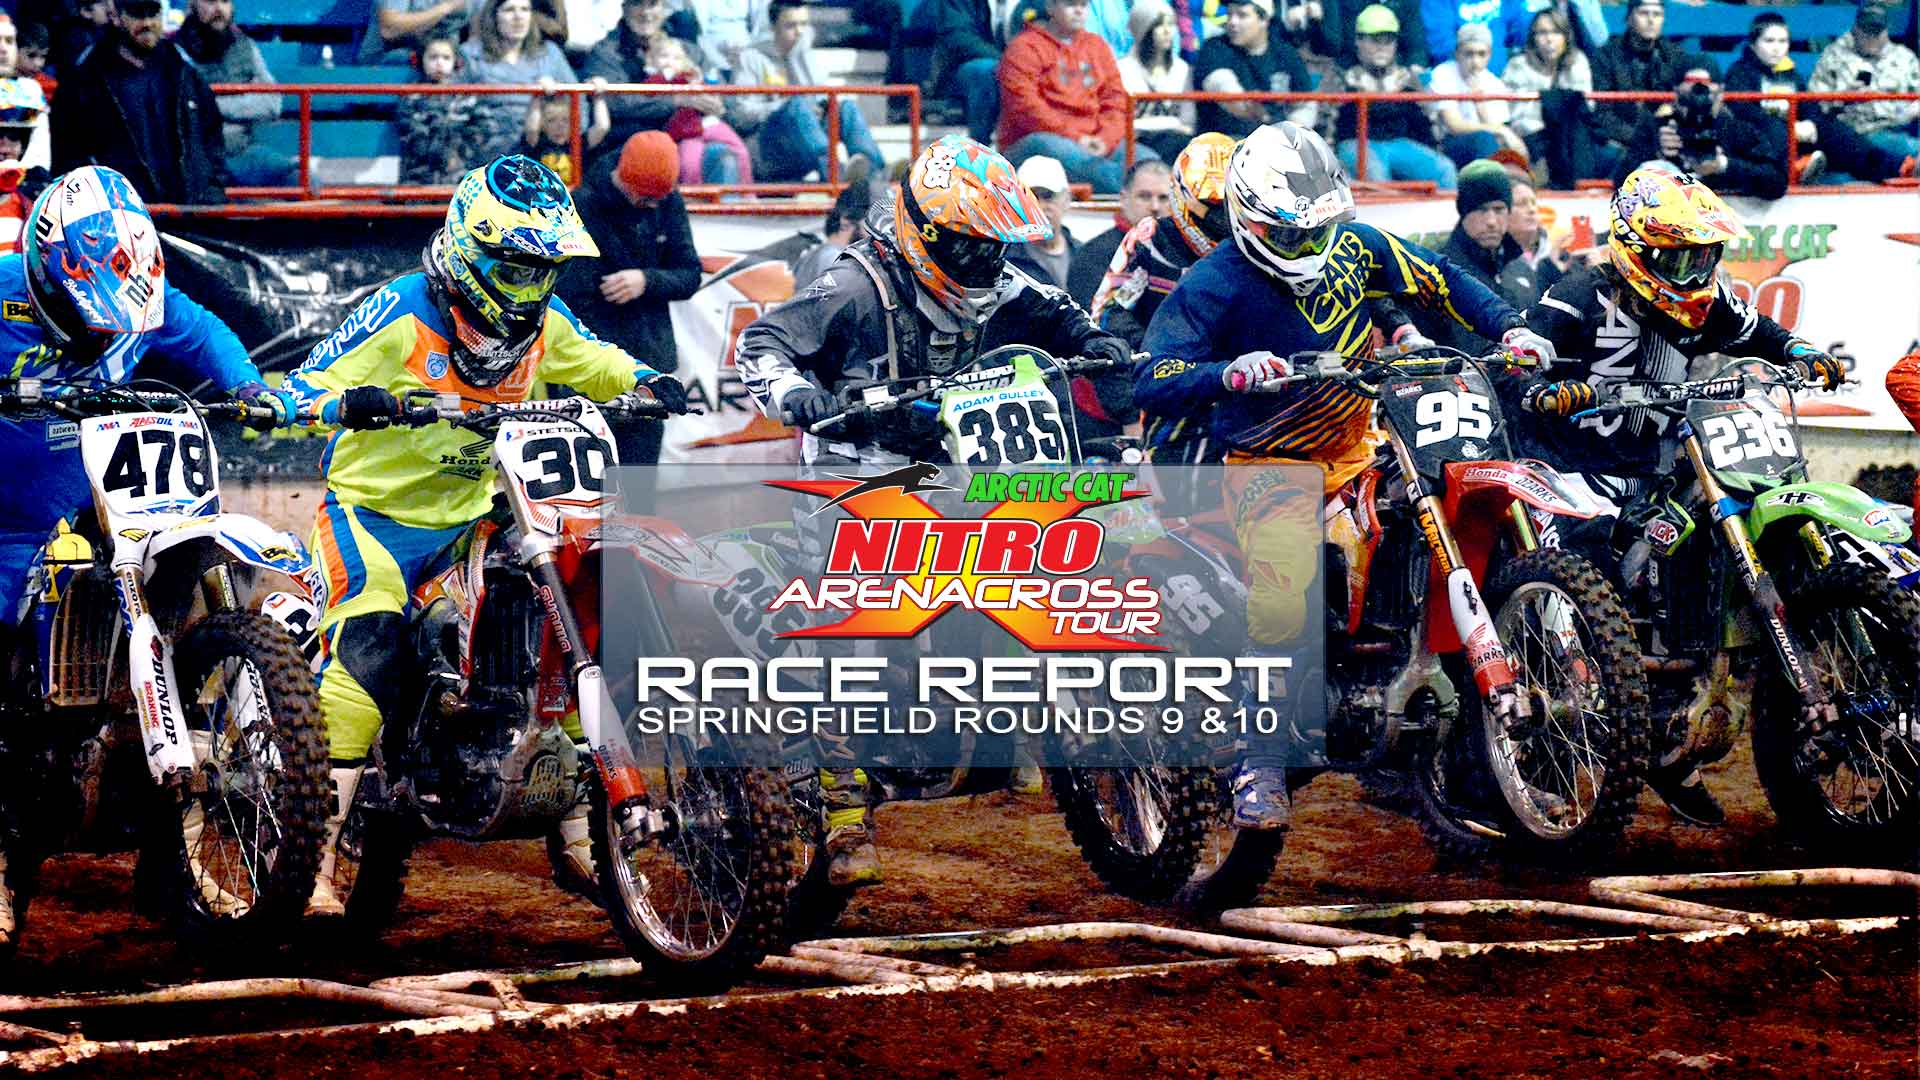 Race Report: Nitro Arenacross Tour - Springfield